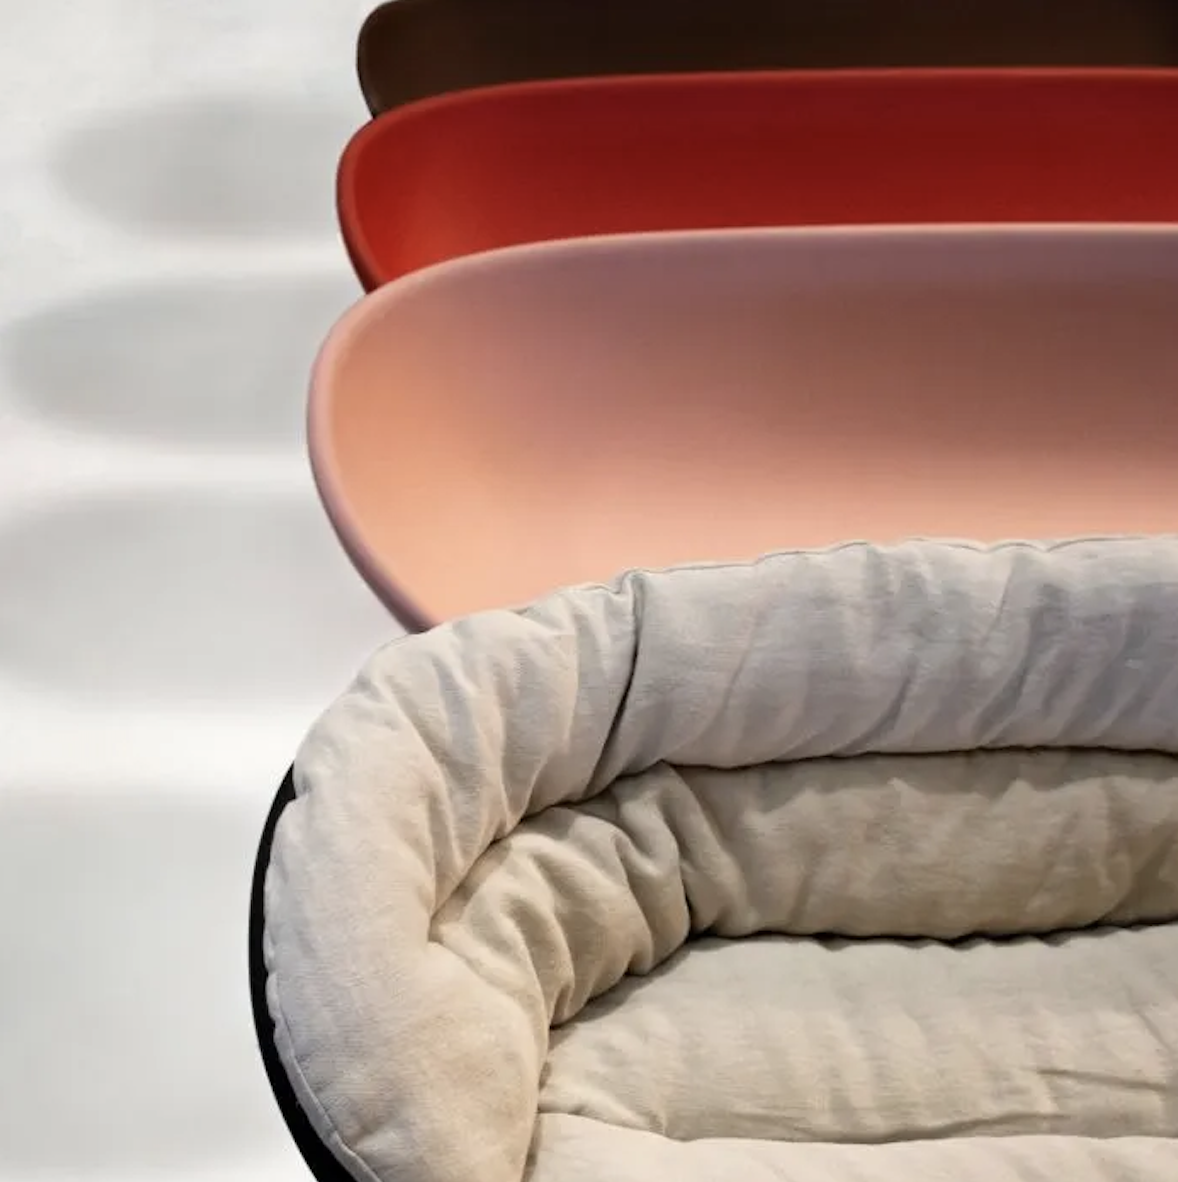 Roly Poly Sofa - The Roly Poly Collection, consisting of an armchair and a sofa, embodies the concepts of furniture and sculpture, thus representing the philosophy of Driade in a perfect way. The characteristic of these monobloc furnishing accessories is the bowl shape of the seat, rounded and welcoming, with cylindrical legs and delicately linear shapes that give it a reassuring and massive look. Made of rotationally molded polyethylene, the low seat has been enriched with soft padded cushions that nestle in its curved shape for an engaging sitting experience. Armchair and sofa are available in a variety of colours to complement any type of interior or exterior decoration.  The material with which this collection is made derives from industrial recycling coming from internal production waste, and therefore controlled, and from post-consumer recycling, that is from products disposed of with separate collection - such as PET bottles and containers, for instance - and recycled, thus giving life to new objects.  All the seats made with this material are characterized by neutral colors - such as black in particular - which makes them homogeneous. | Matter of Stuff